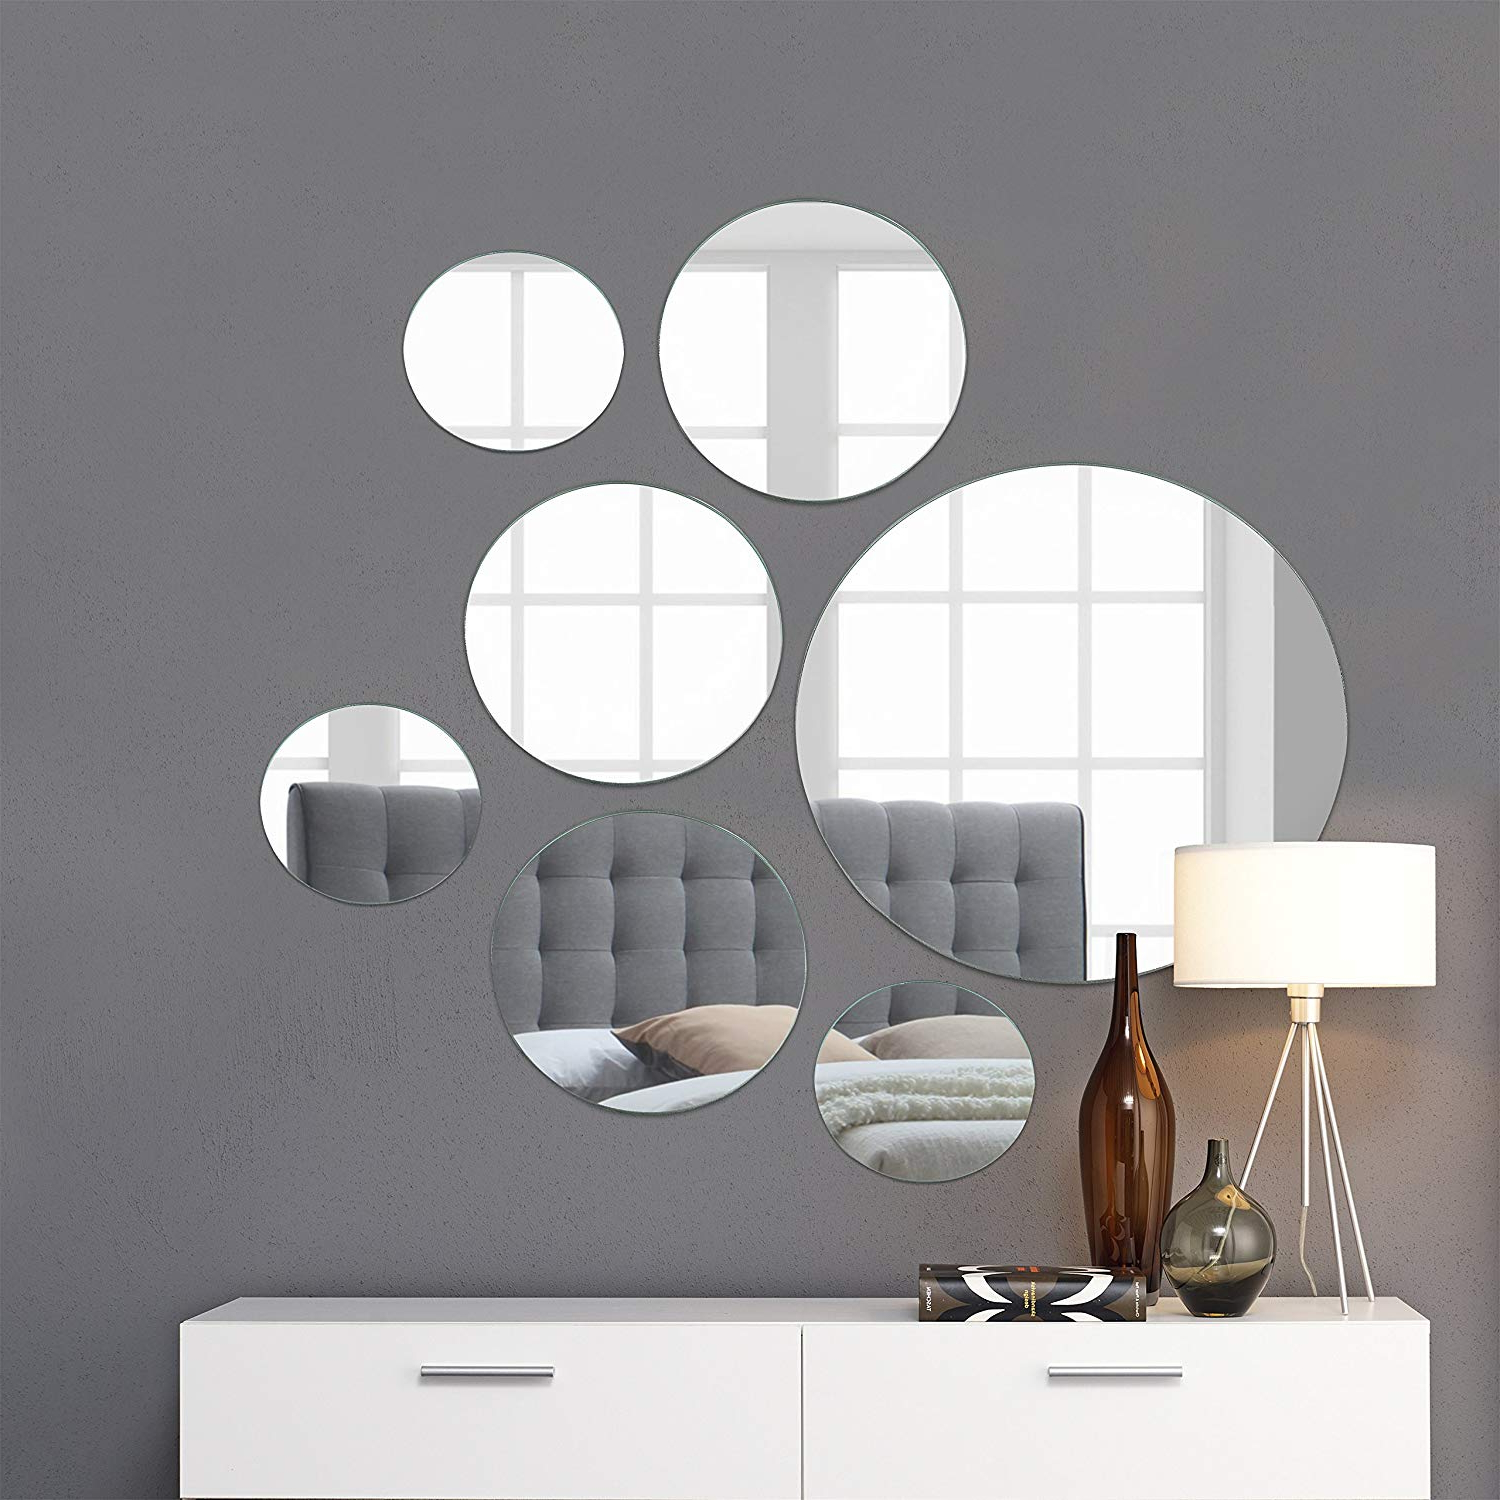 """Set Of Wall Mirrors With Latest Light In The Dark Medium Round Mirror Wall Mounted Assorted Sizes (1X10"""", 3X7"""", 3X4"""") – Set Of 7 Round Glass Mirrors Wall Decoration For Living Room, (View 4 of 20)"""